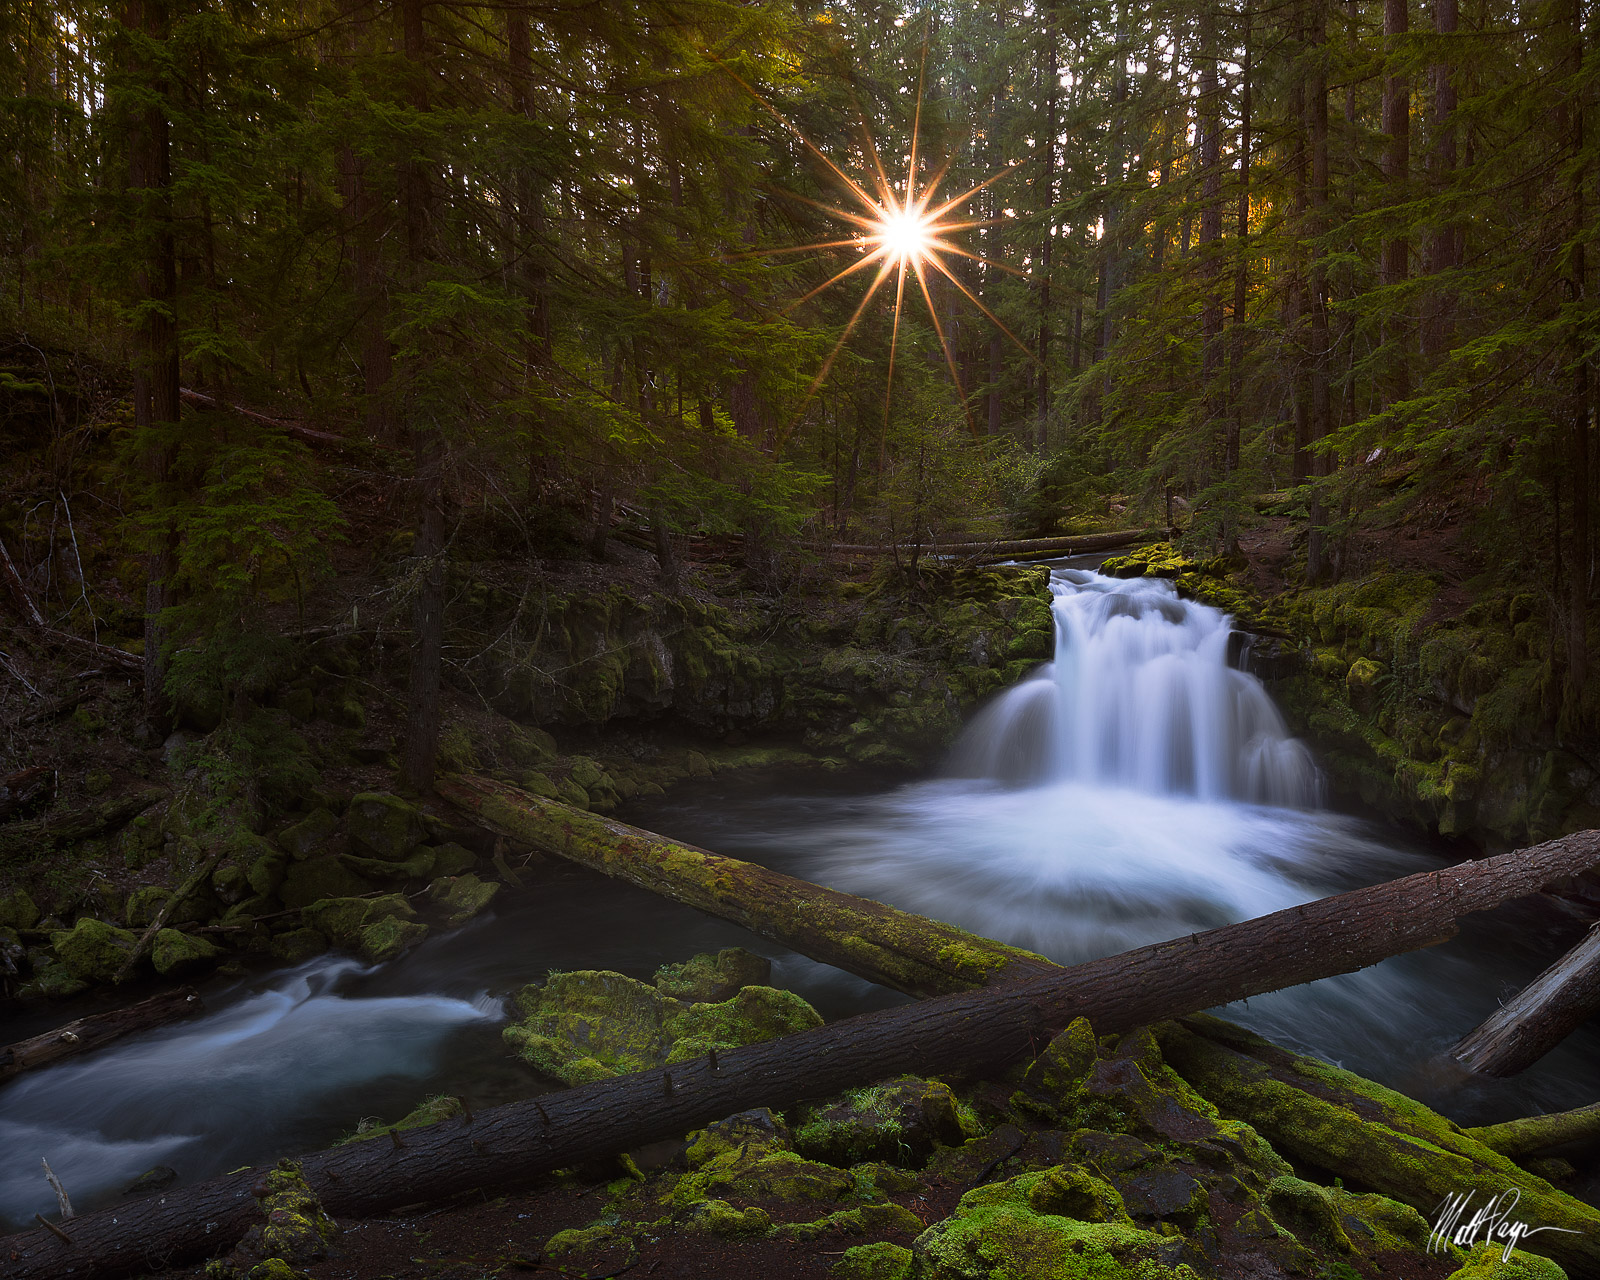 Landscape, Long Exposure, Nature, North Umpqua River, Oregon, Pacific Northwest, Sunrise, Sunstar, Waterfall, Whitehorse Falls, photo